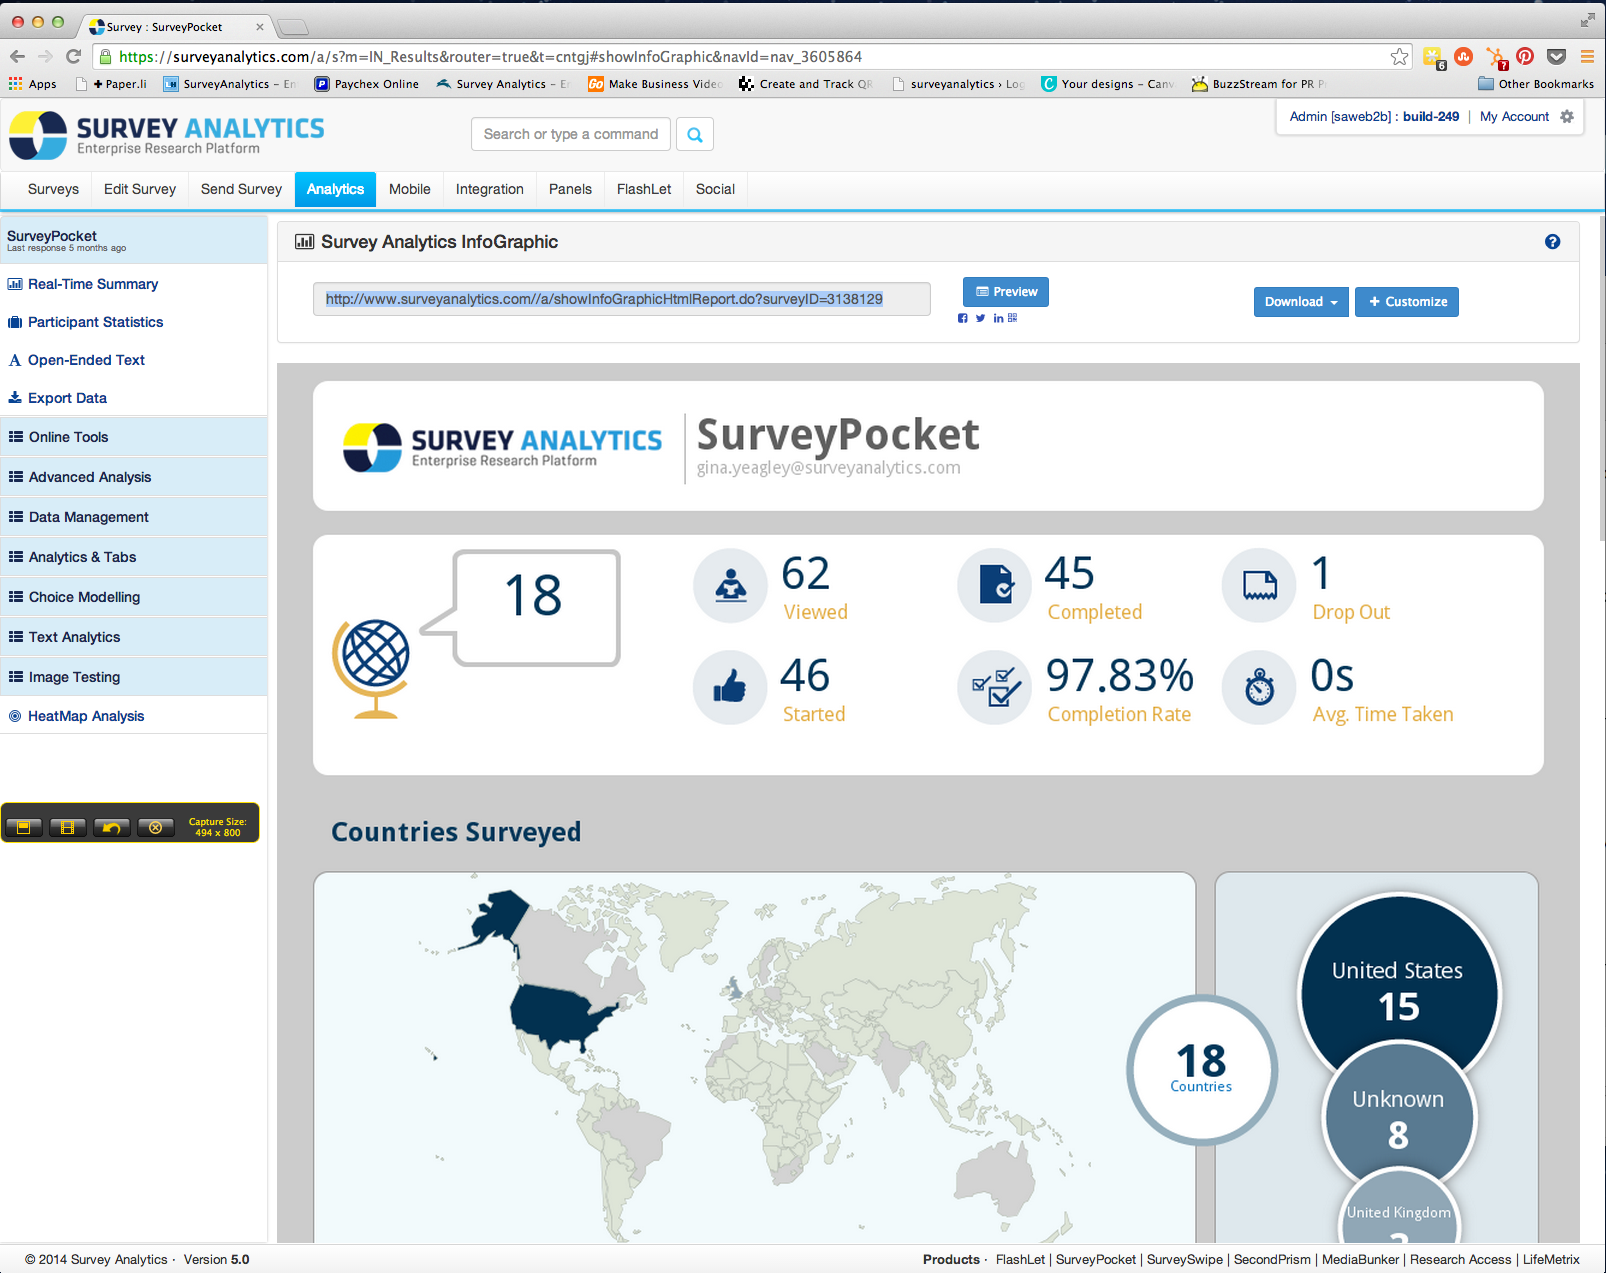 View survey results in a customizable infographic